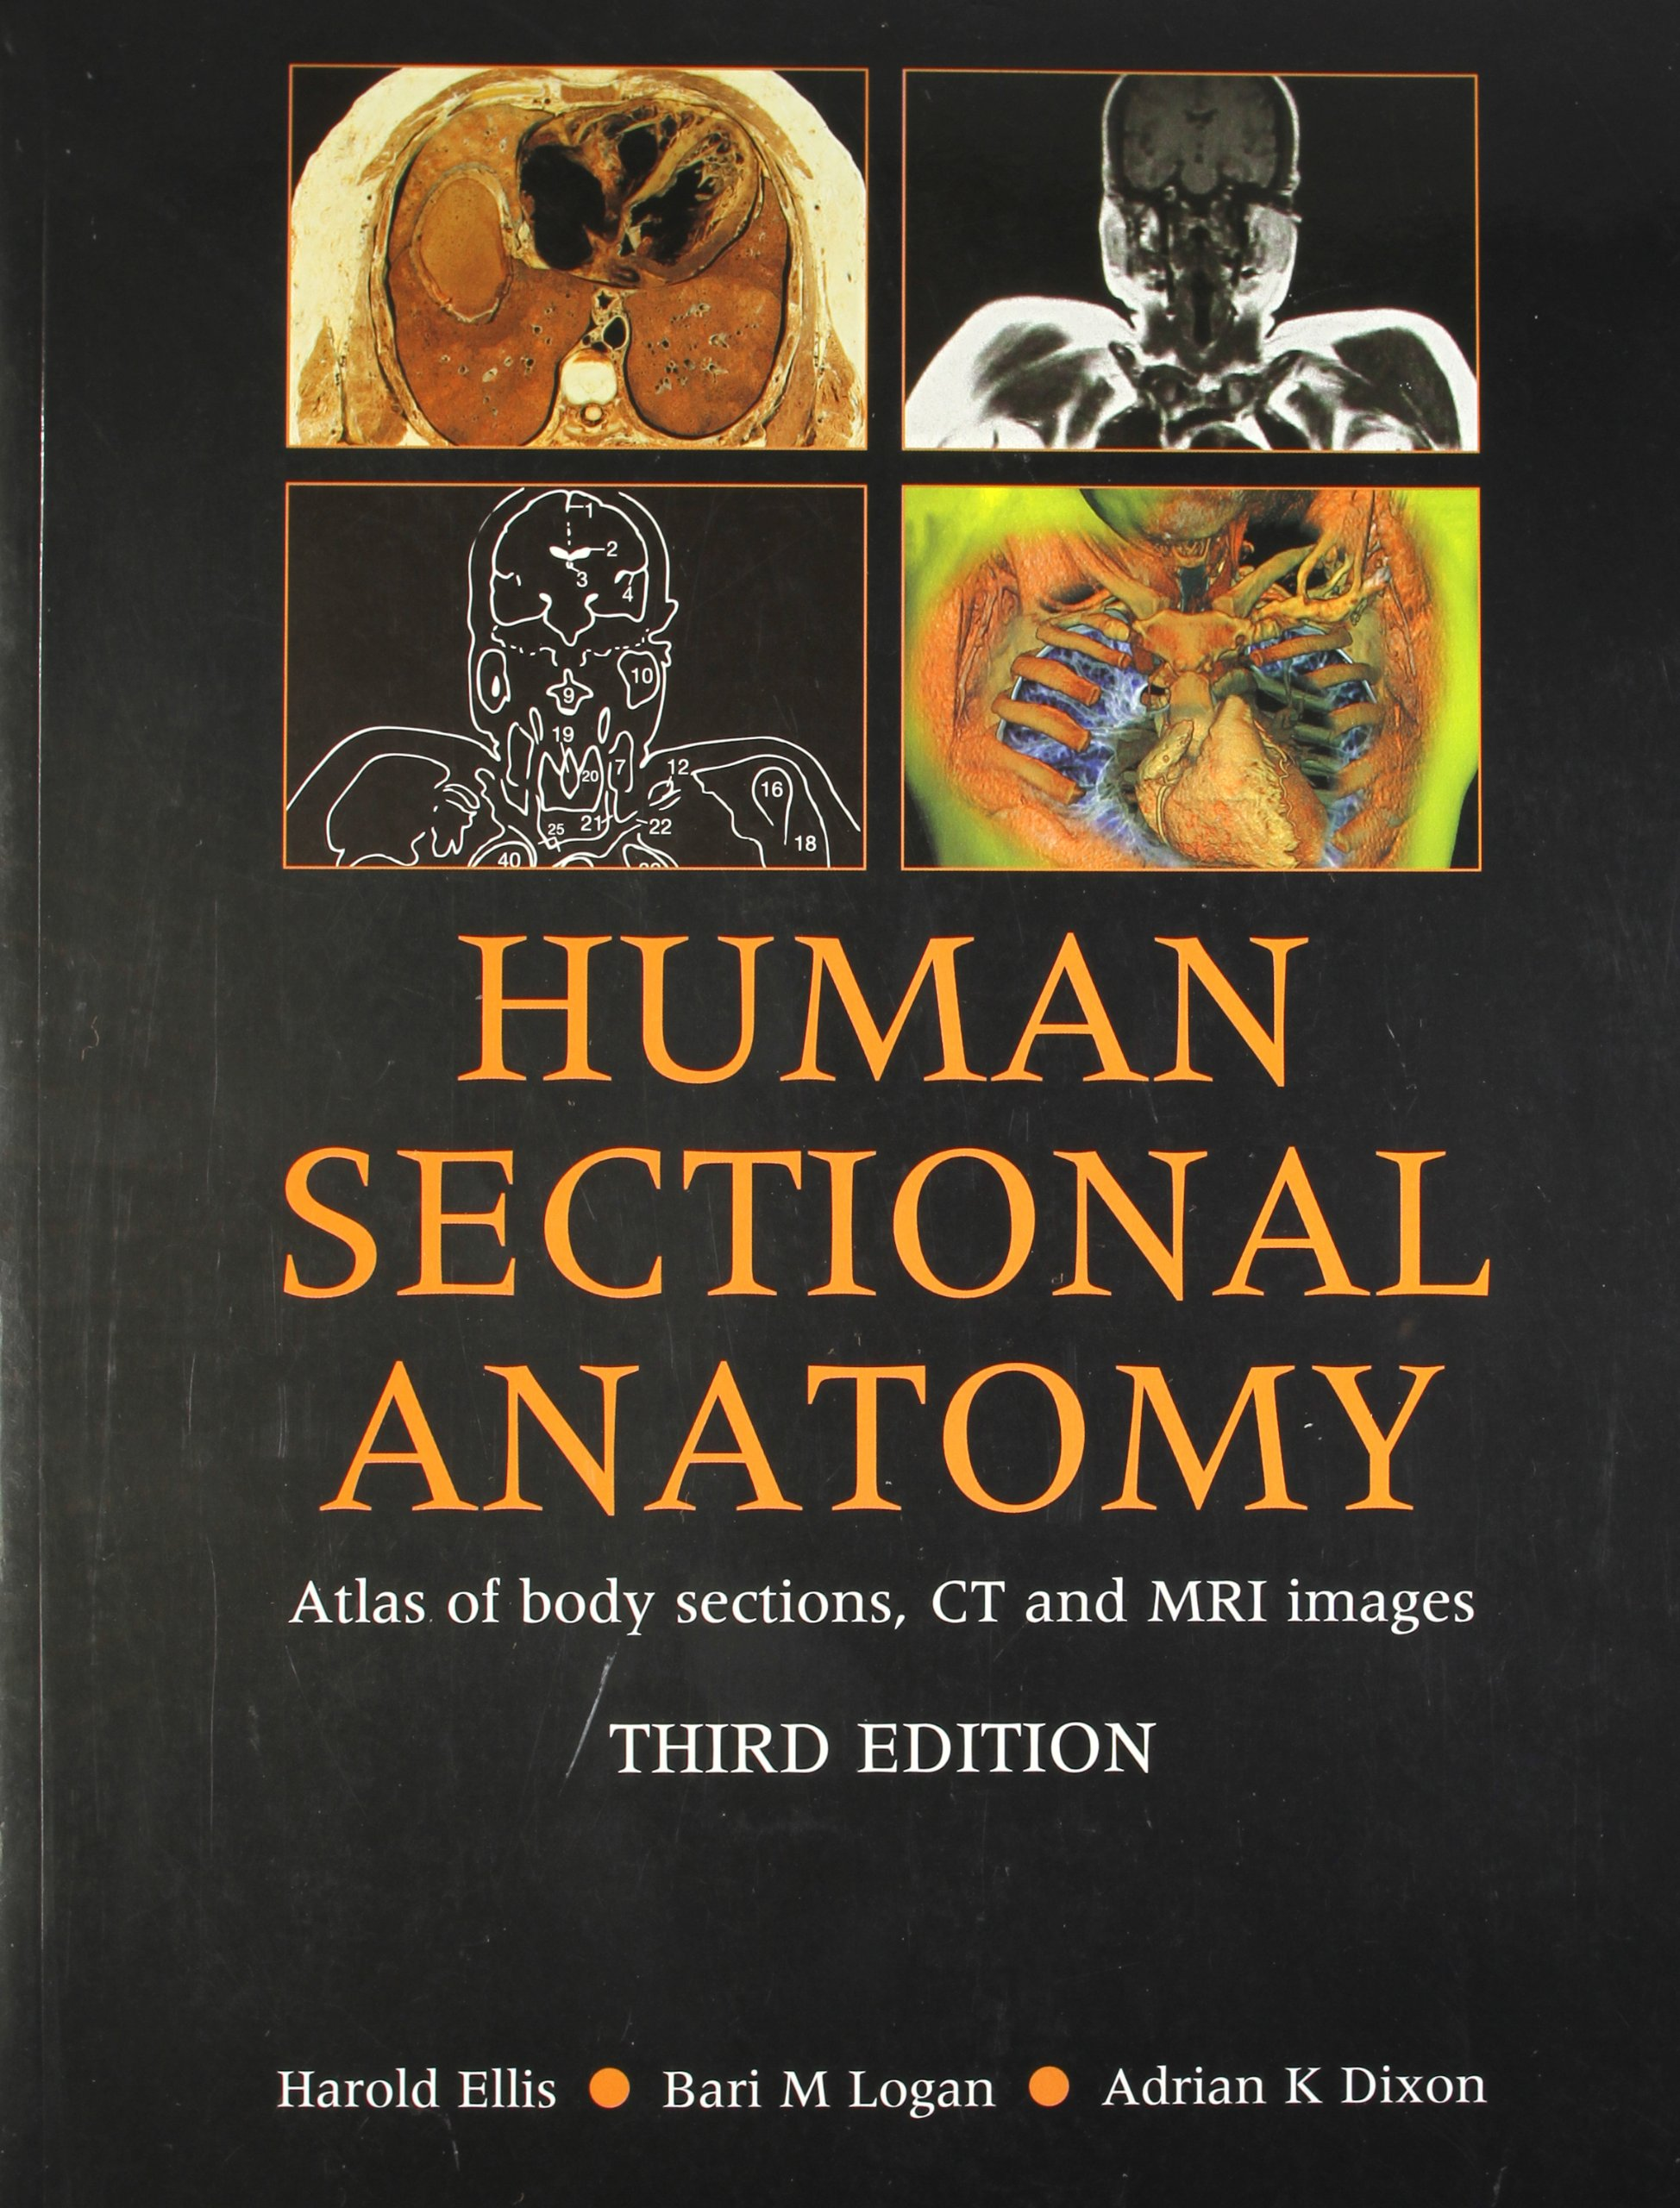 Human Sectional Anatomy Atlas of Body Sections, CT and MRI Images ...